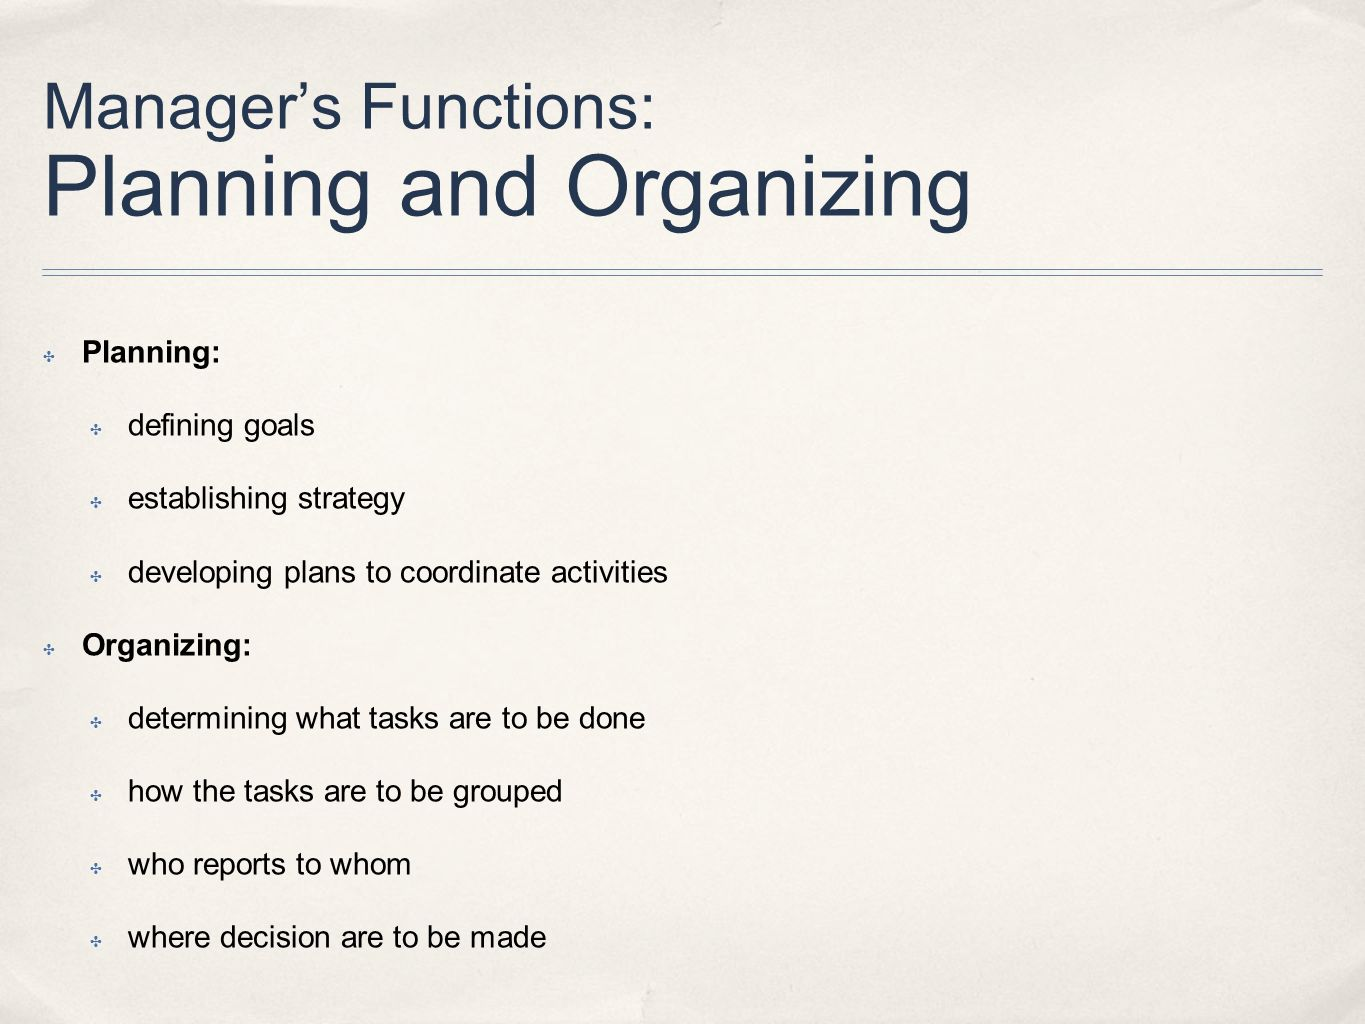 Manager's Functions: Planning and Organizing